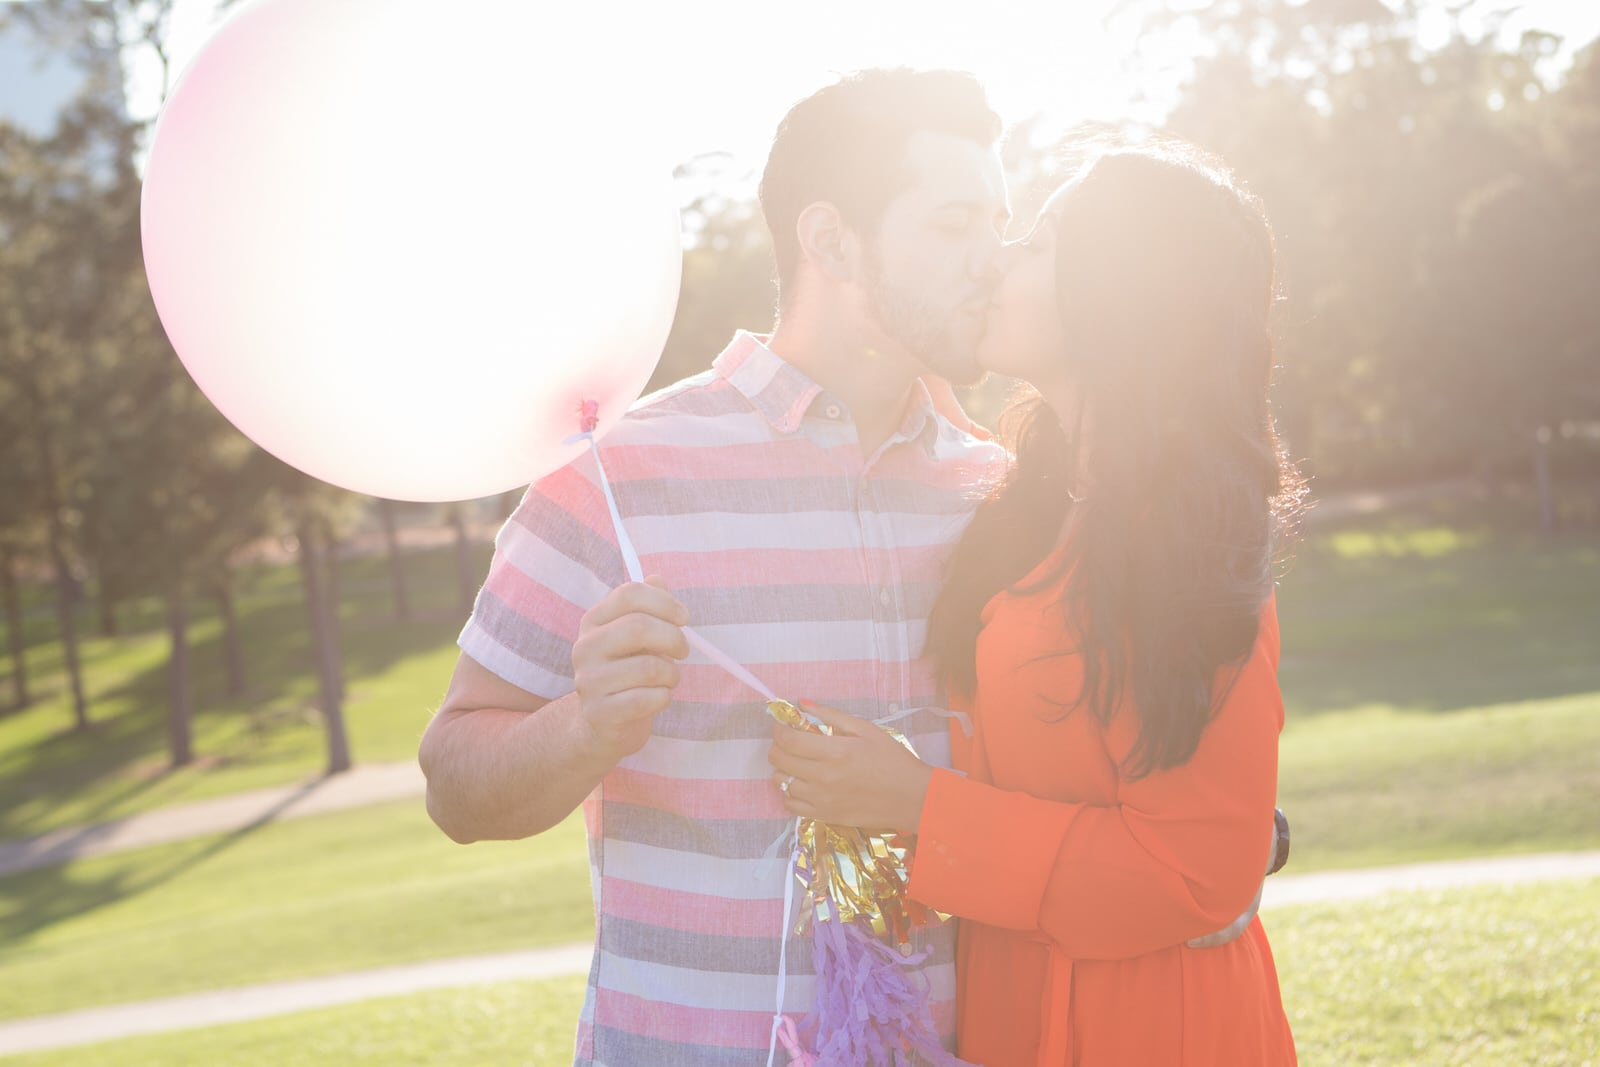 The couple is kissing with the bright sun overhead.